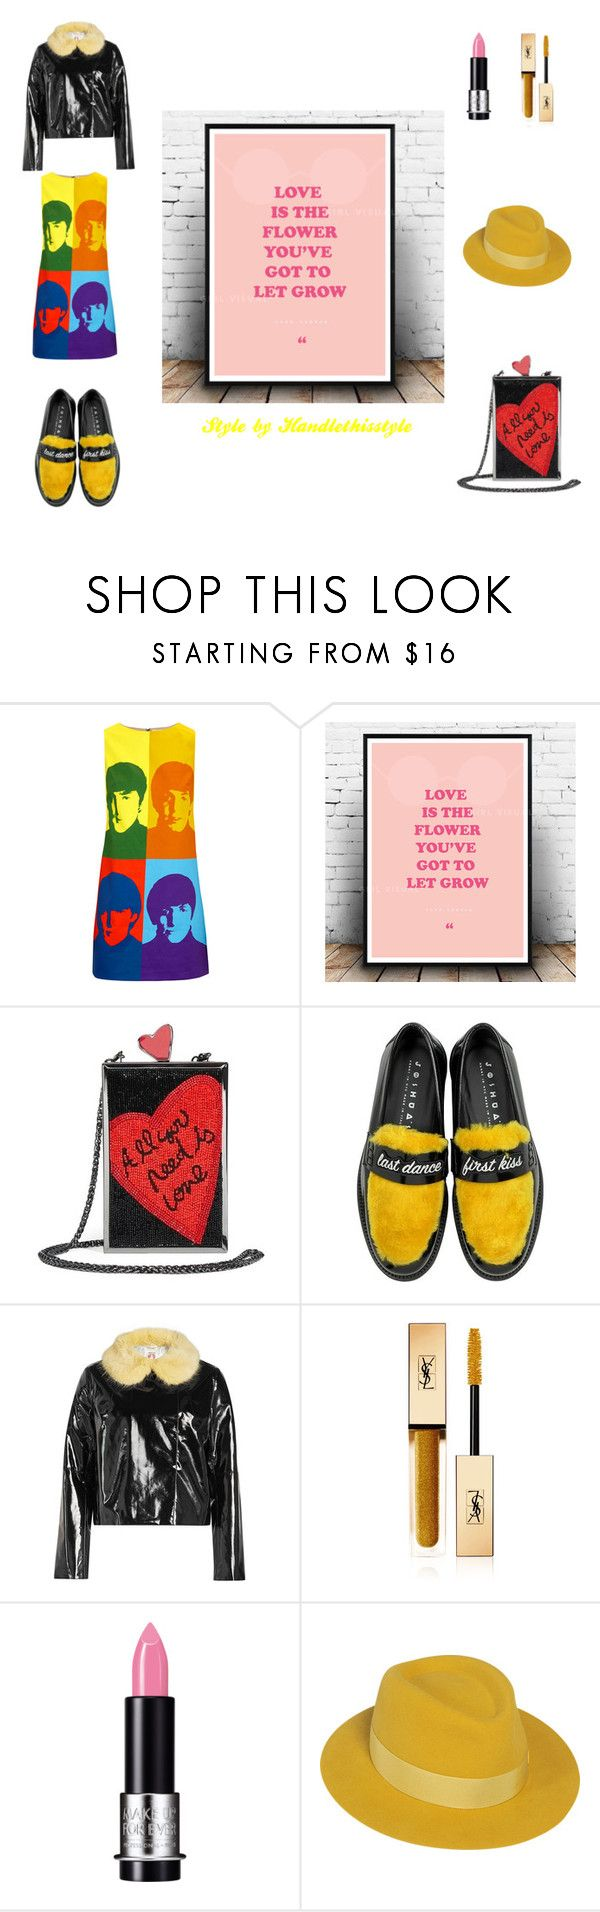 """Love is The Flower 🌹🌹🌹🌼🌼🌼🌷🌷🌷"" by handlethisstyle ❤ liked on Polyvore featuring Alice + Olivia, Joshua's, Shrimps, Yves Saint Laurent, MAKE UP FOR EVER and Maison Michel"